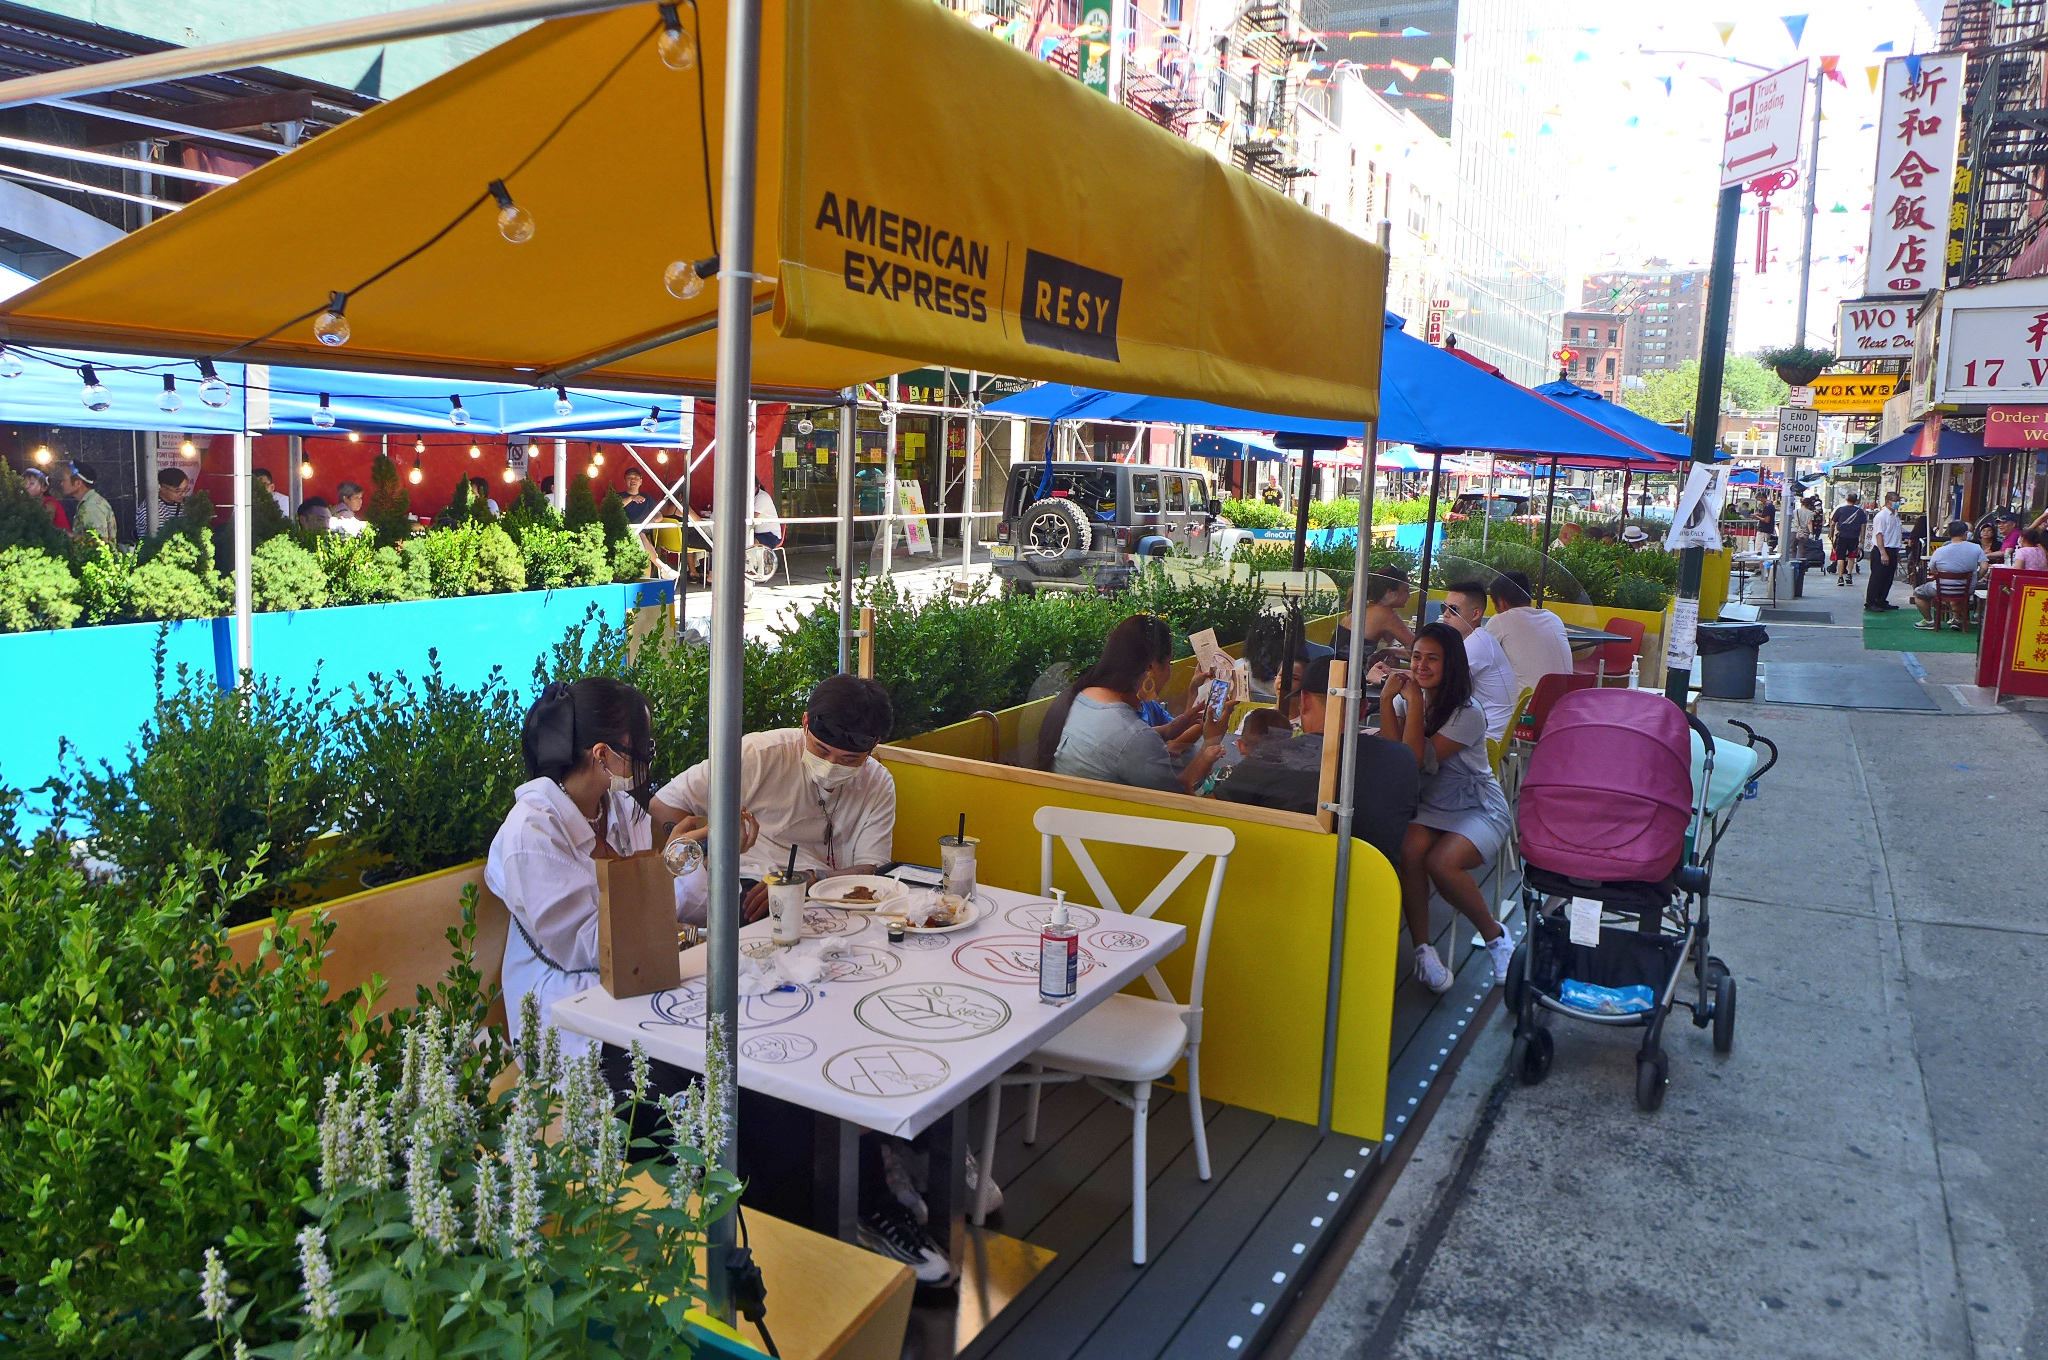 An outddor table with an awning surrounded by flowers.